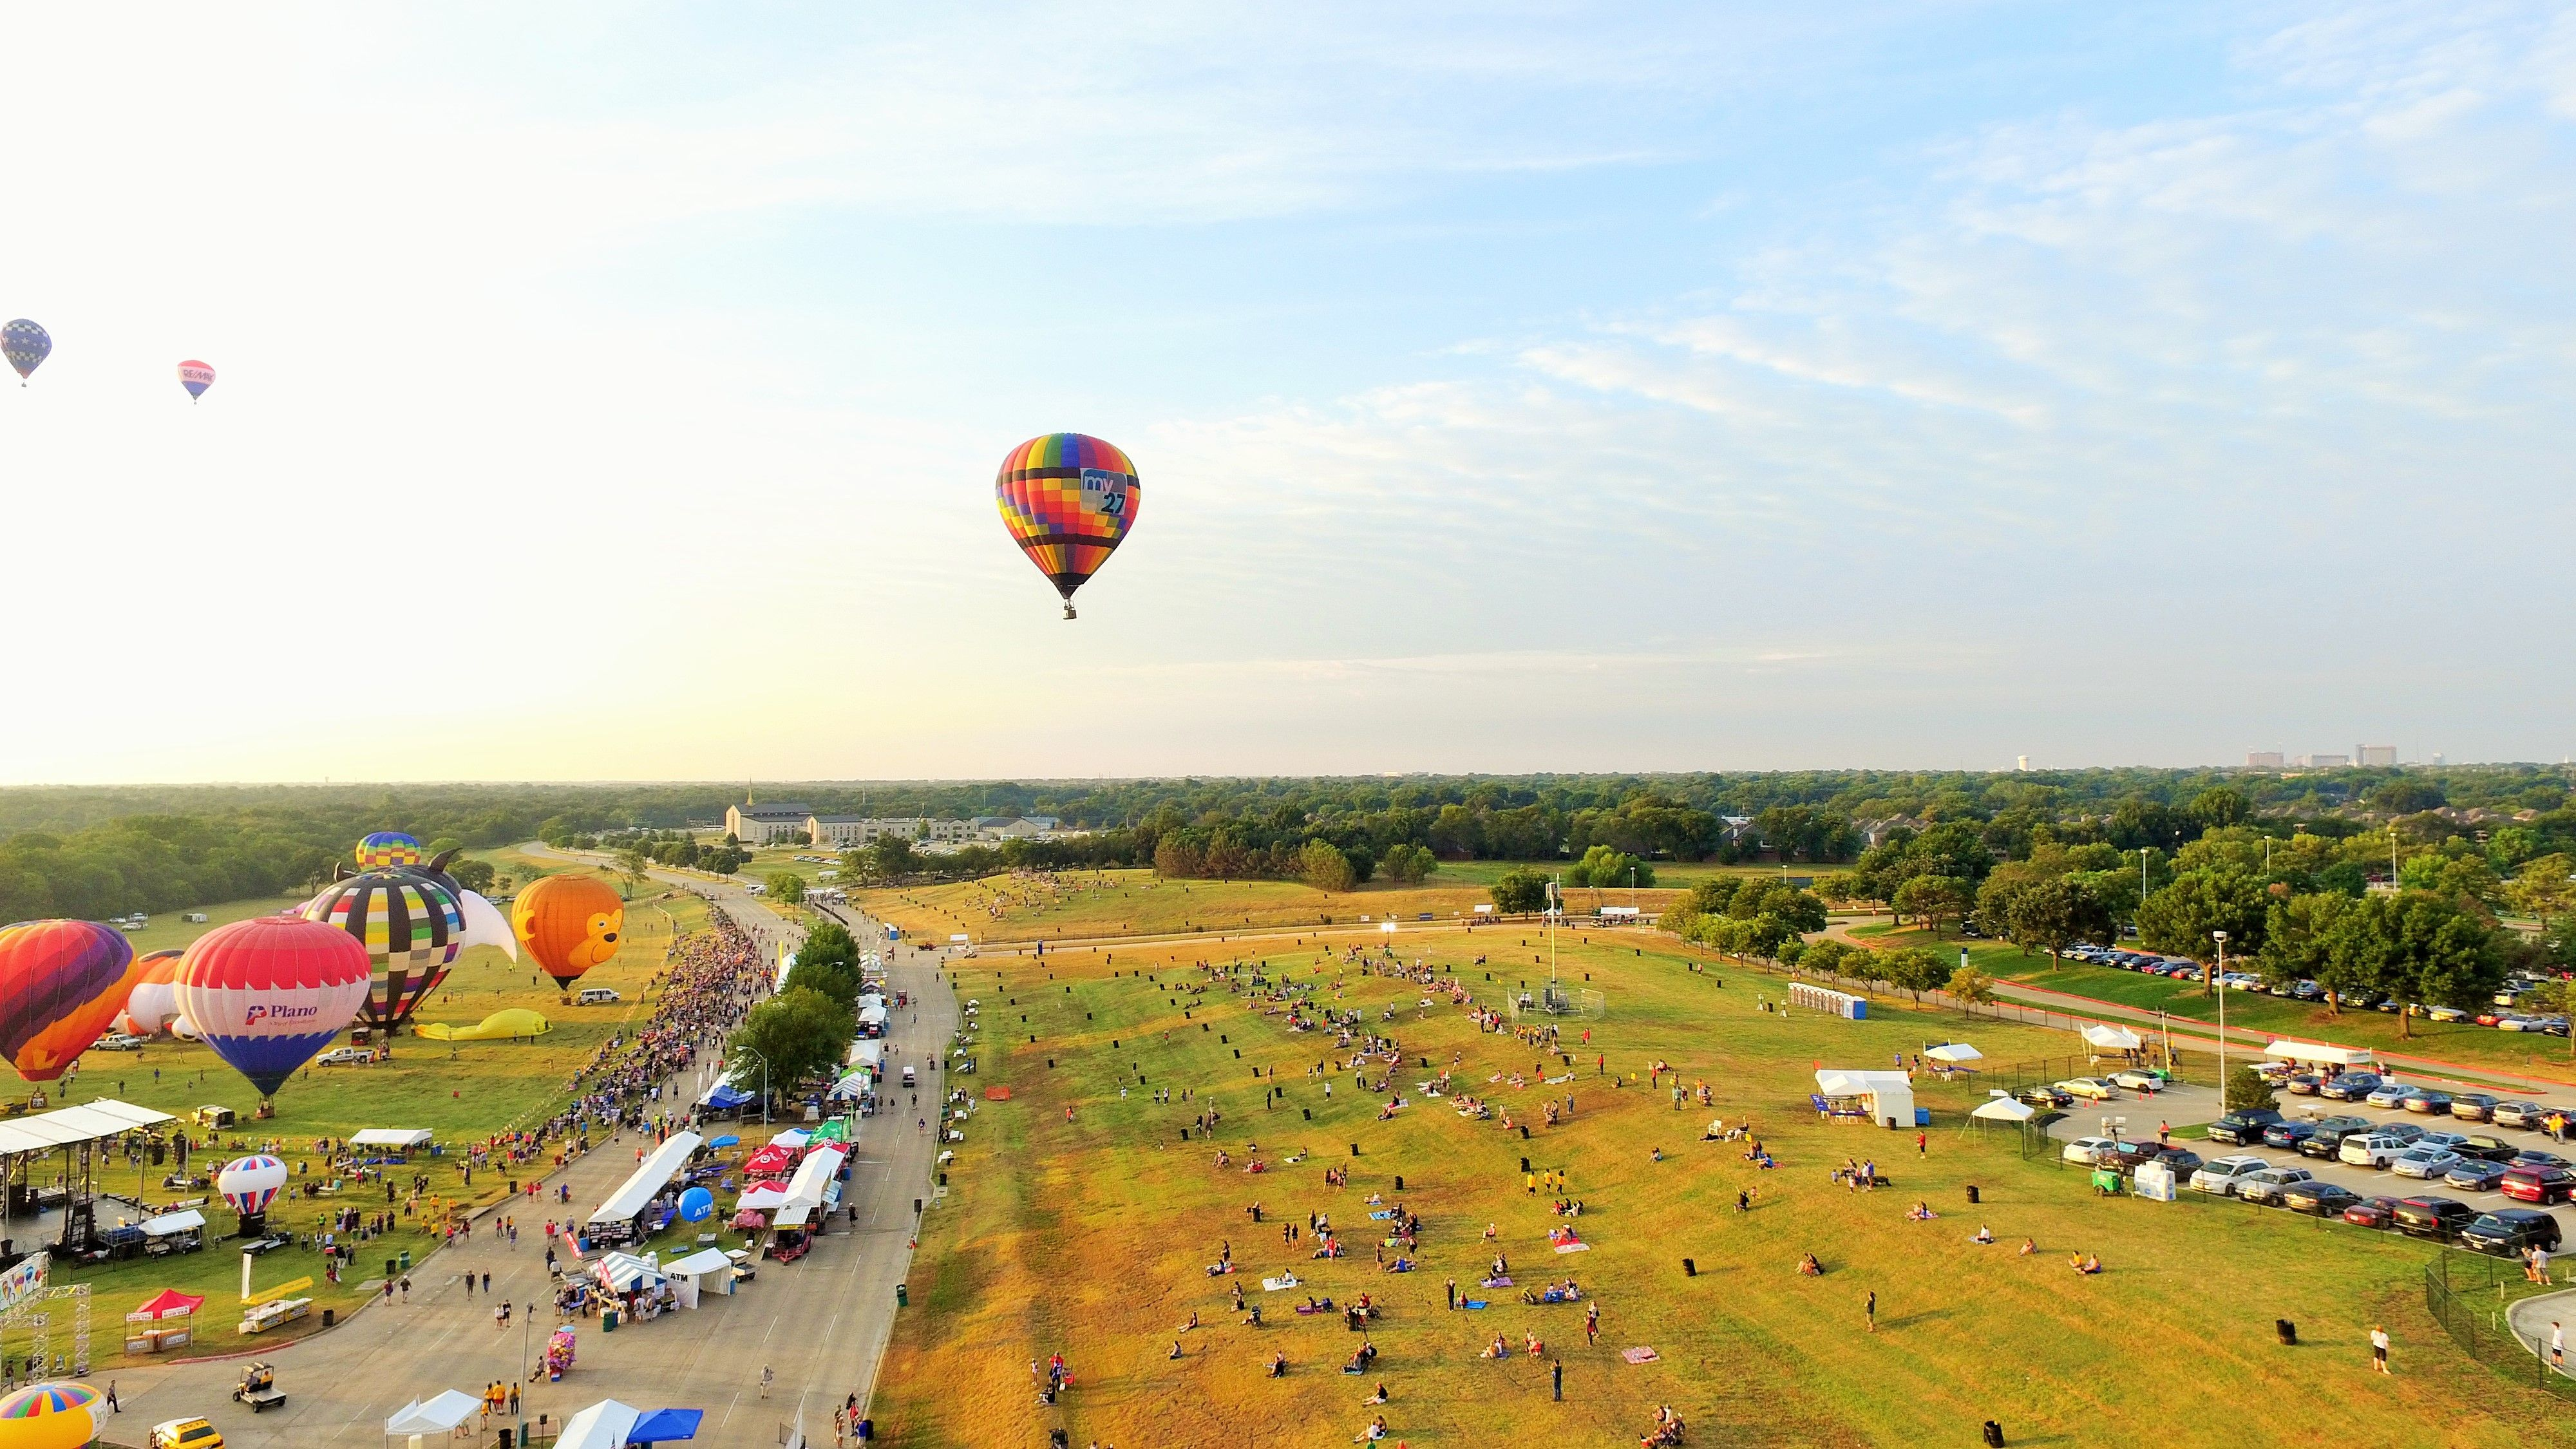 2015 InTouch Credit Union Plano Balloon Festival held at